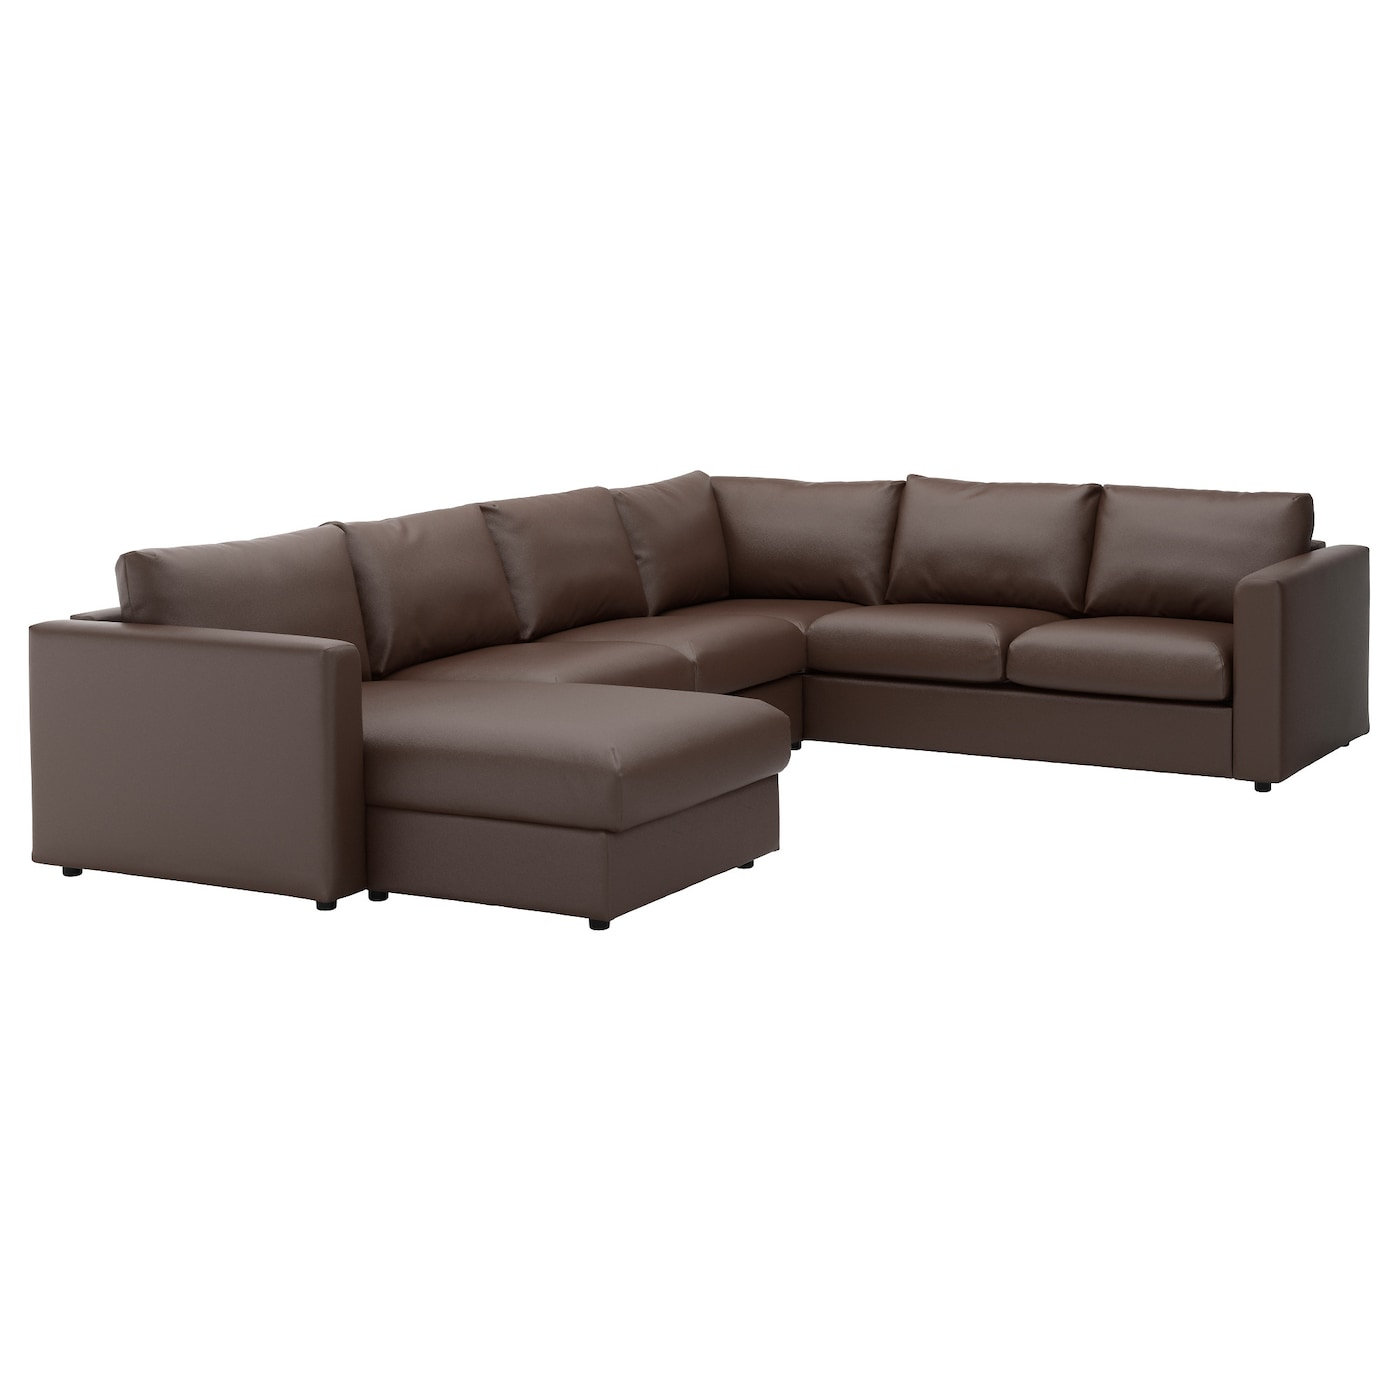 Vimle corner sofa 5 seat with chaise longue farsta dark for Brown couch with chaise